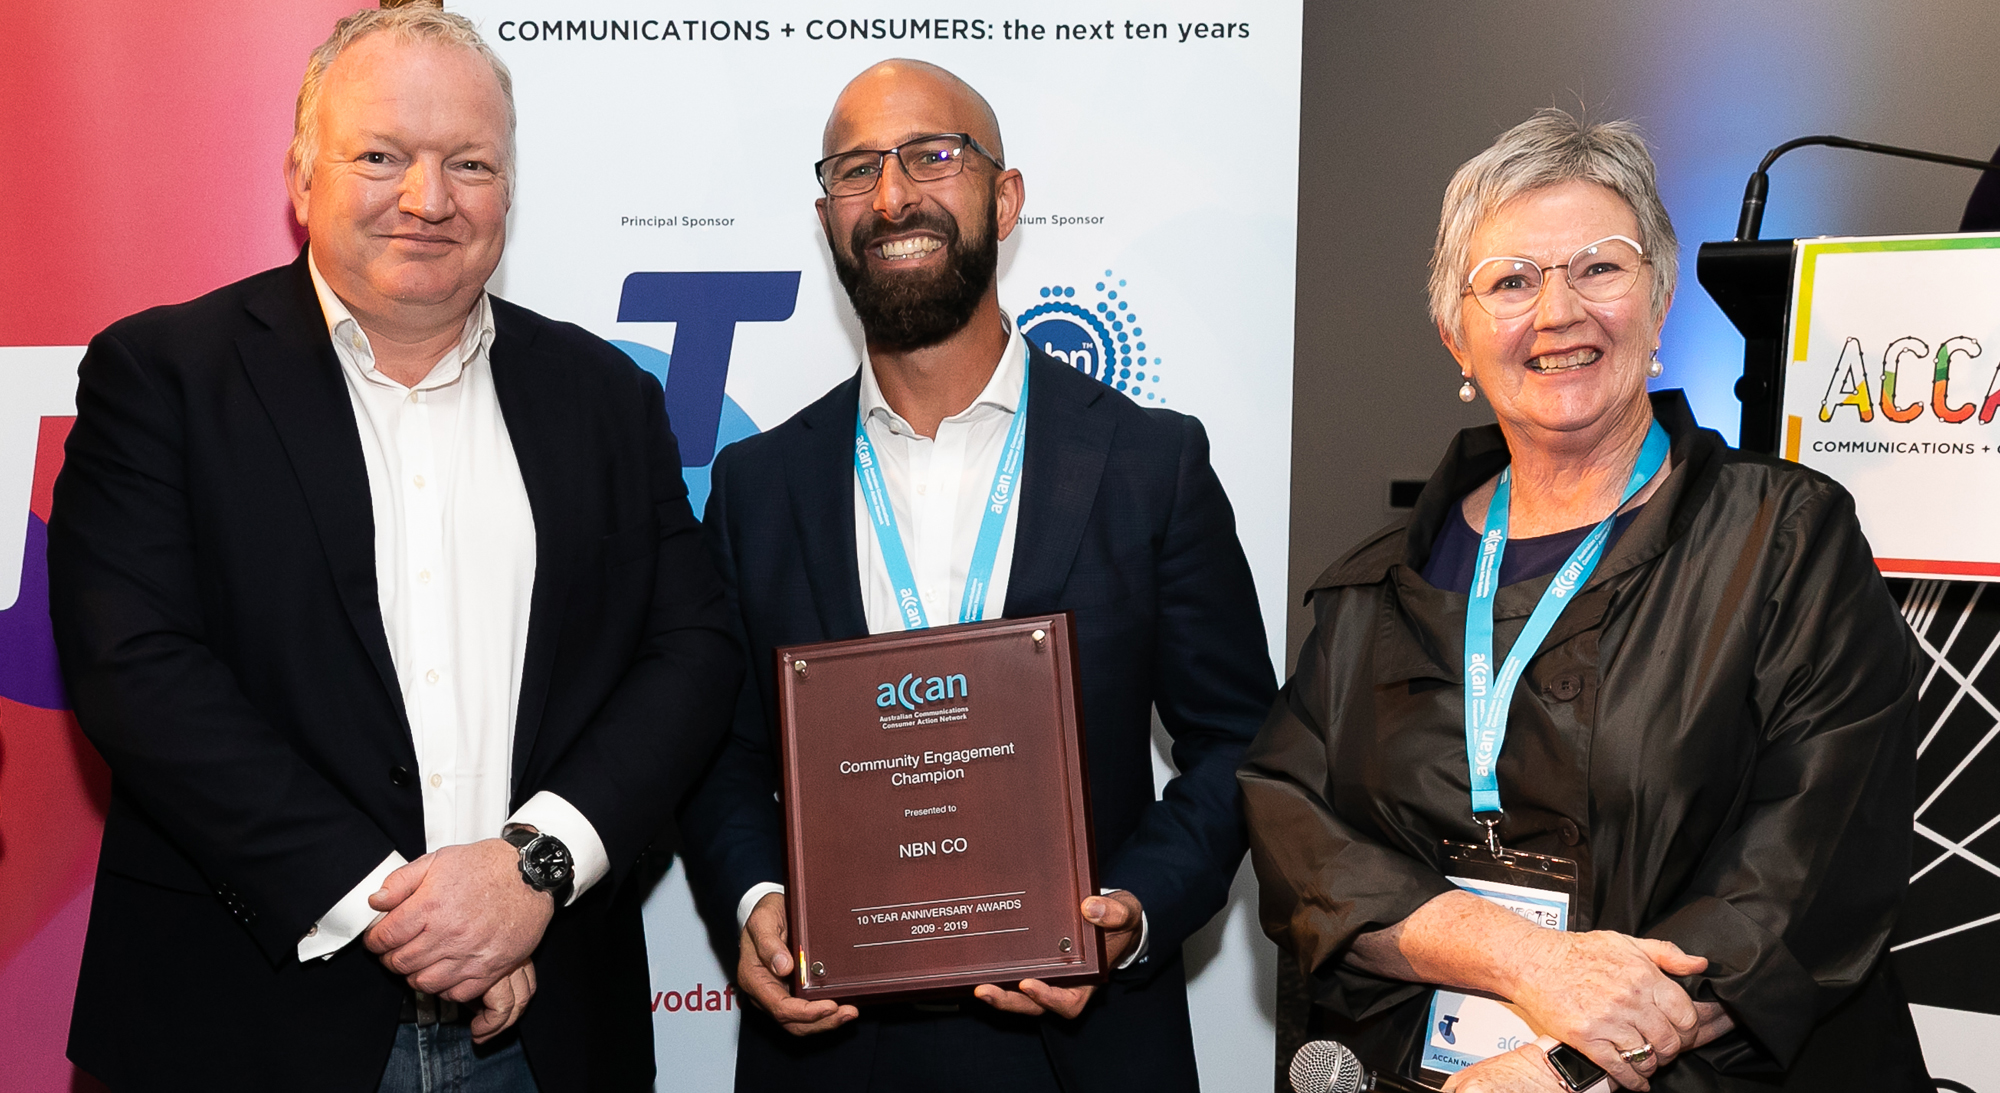 NBN Co receiving Community Engagement Champion award